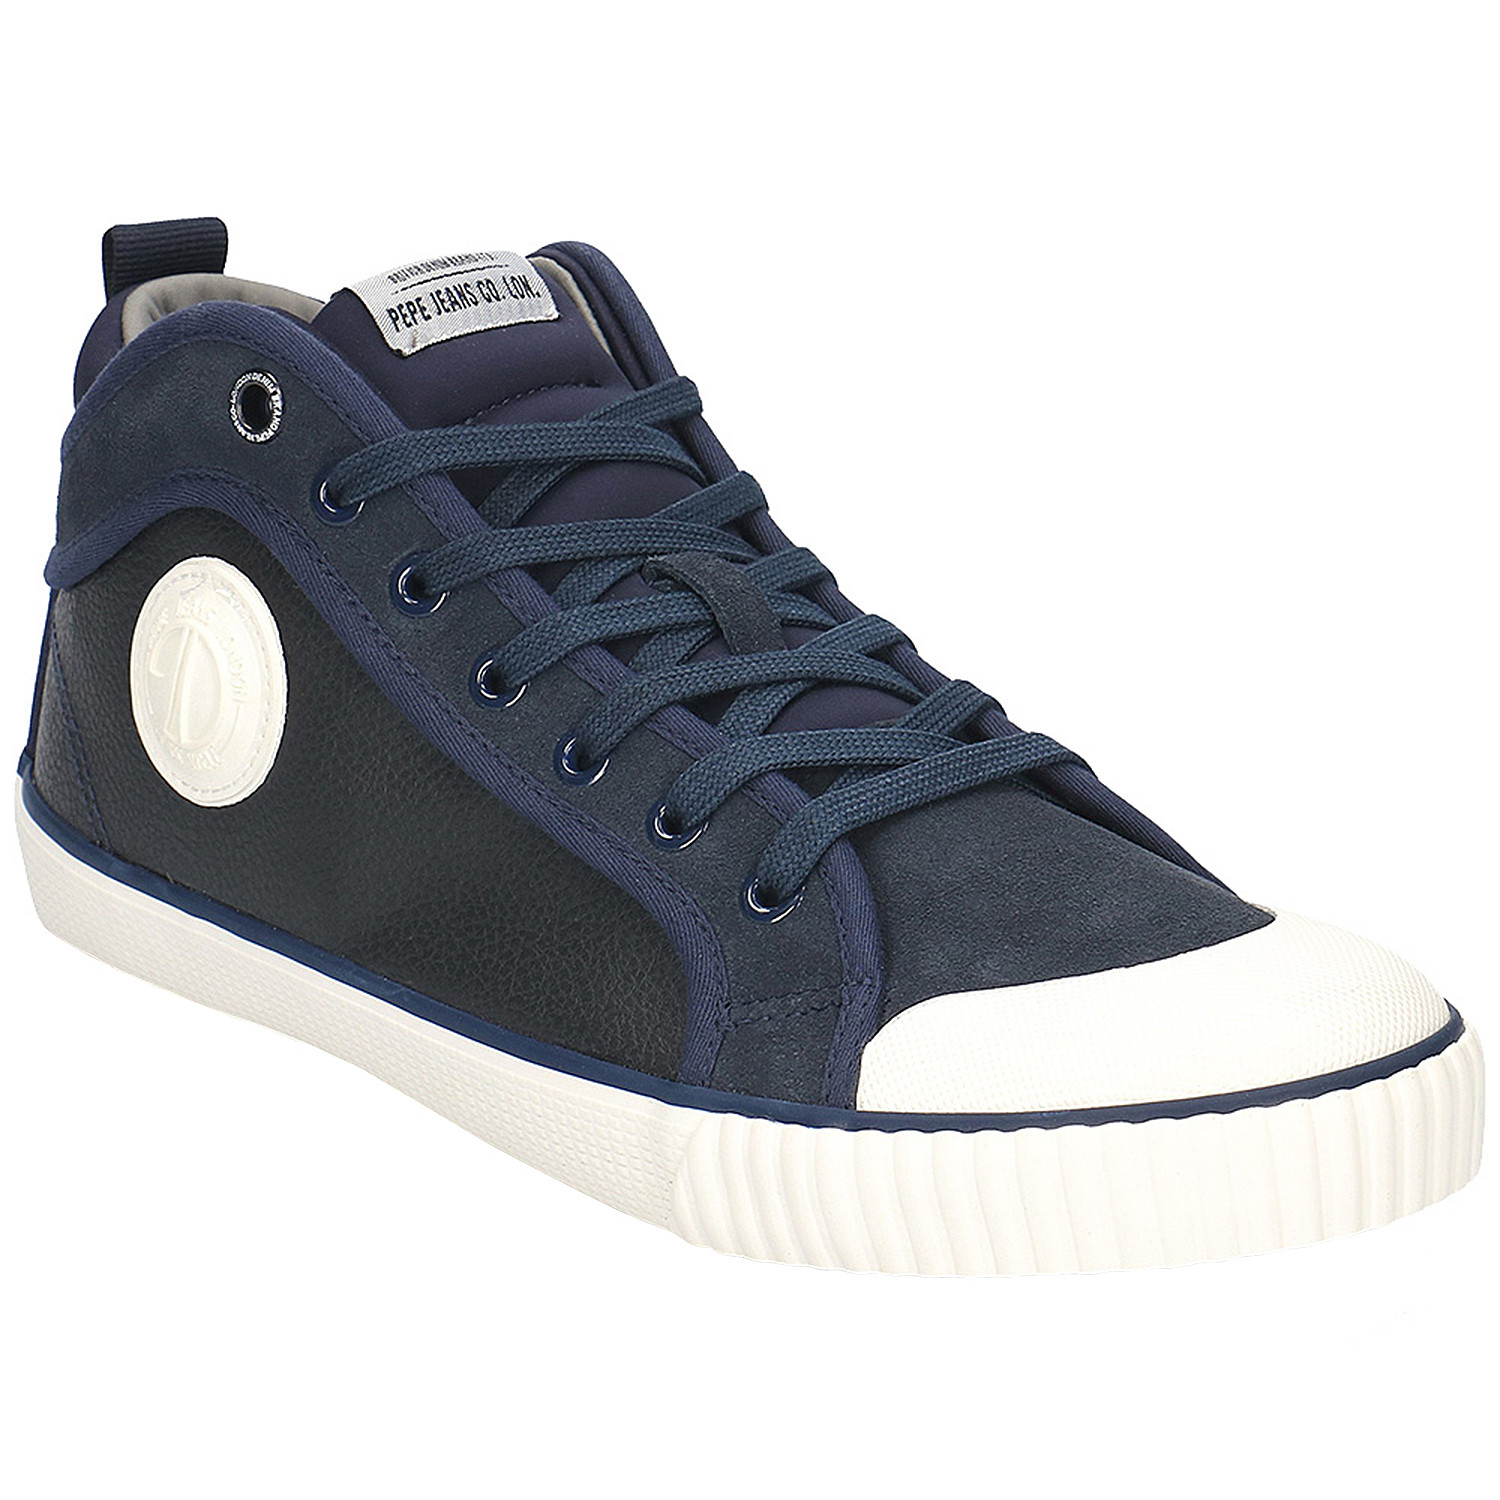 Pepe jeans Chaussures Industry Sock Chaussure Homme Pepe jeans soldes sbUeuVz